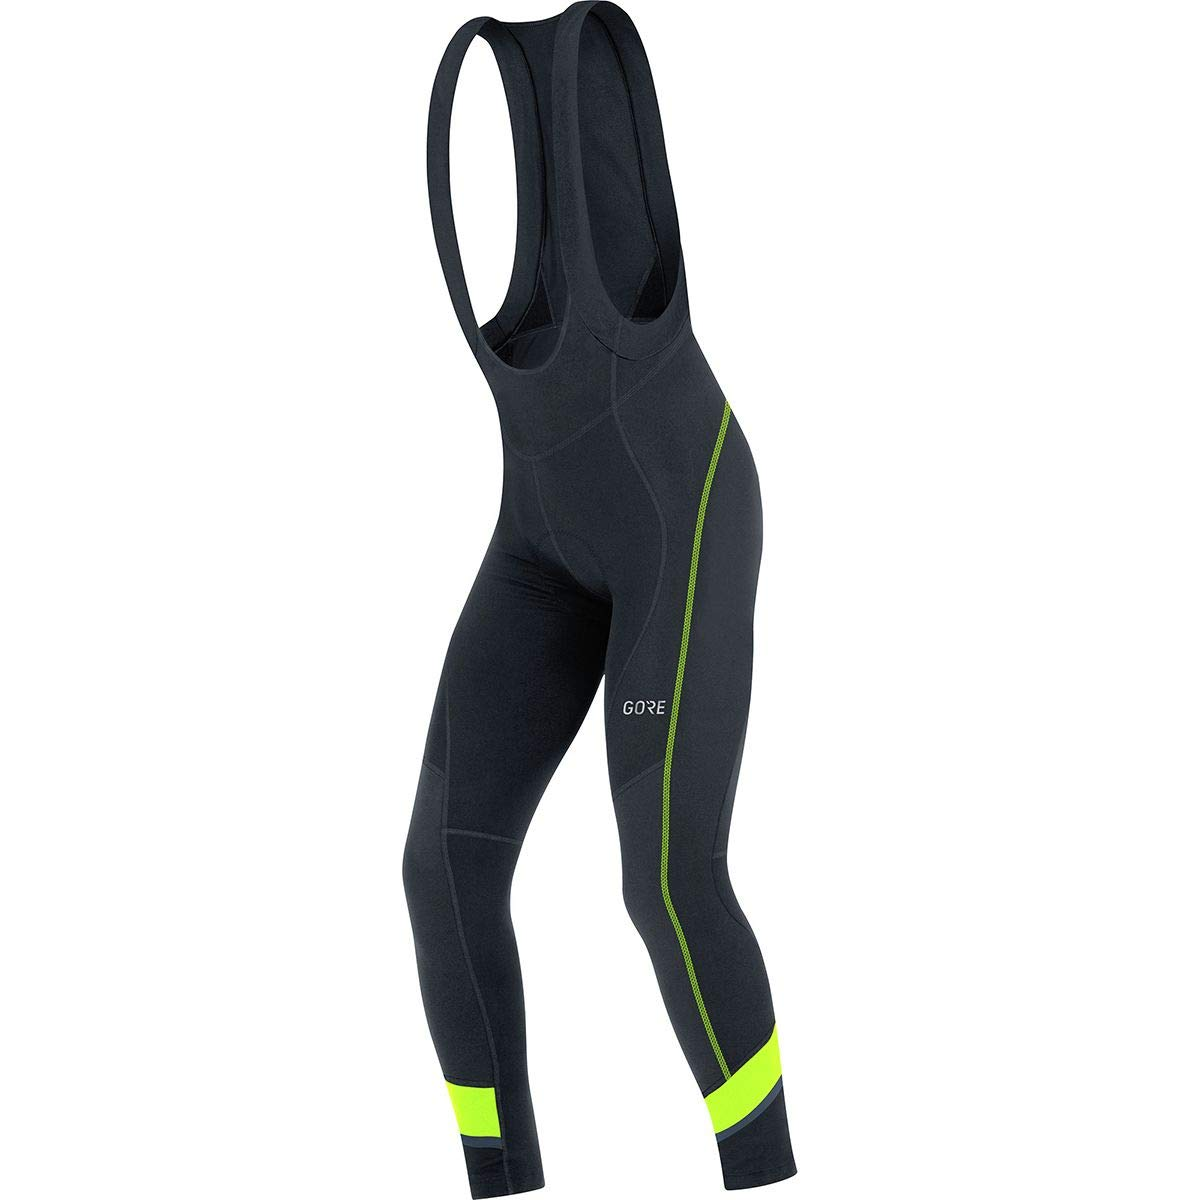 GORE WEAR Men's Breathable, Long Cycling bib Tights, with seat Insert, C5 Thermo Bib Tights+, XL, Black/Neon-Yellow, 100365